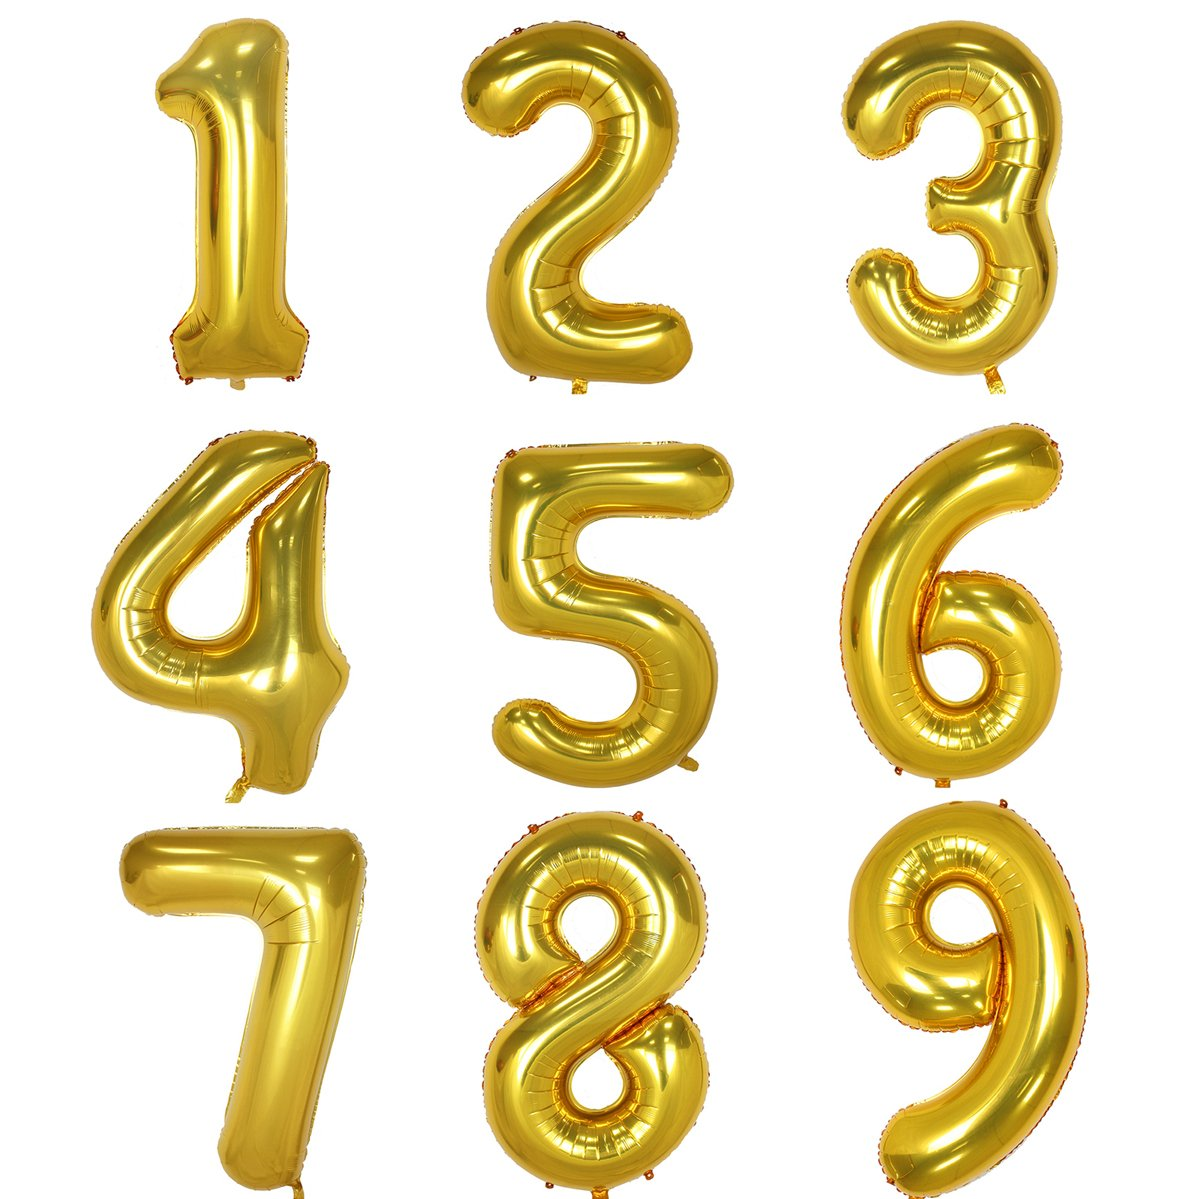 40 Inch Gold Digit Helium Foil Birthday Party Balloons Number 2